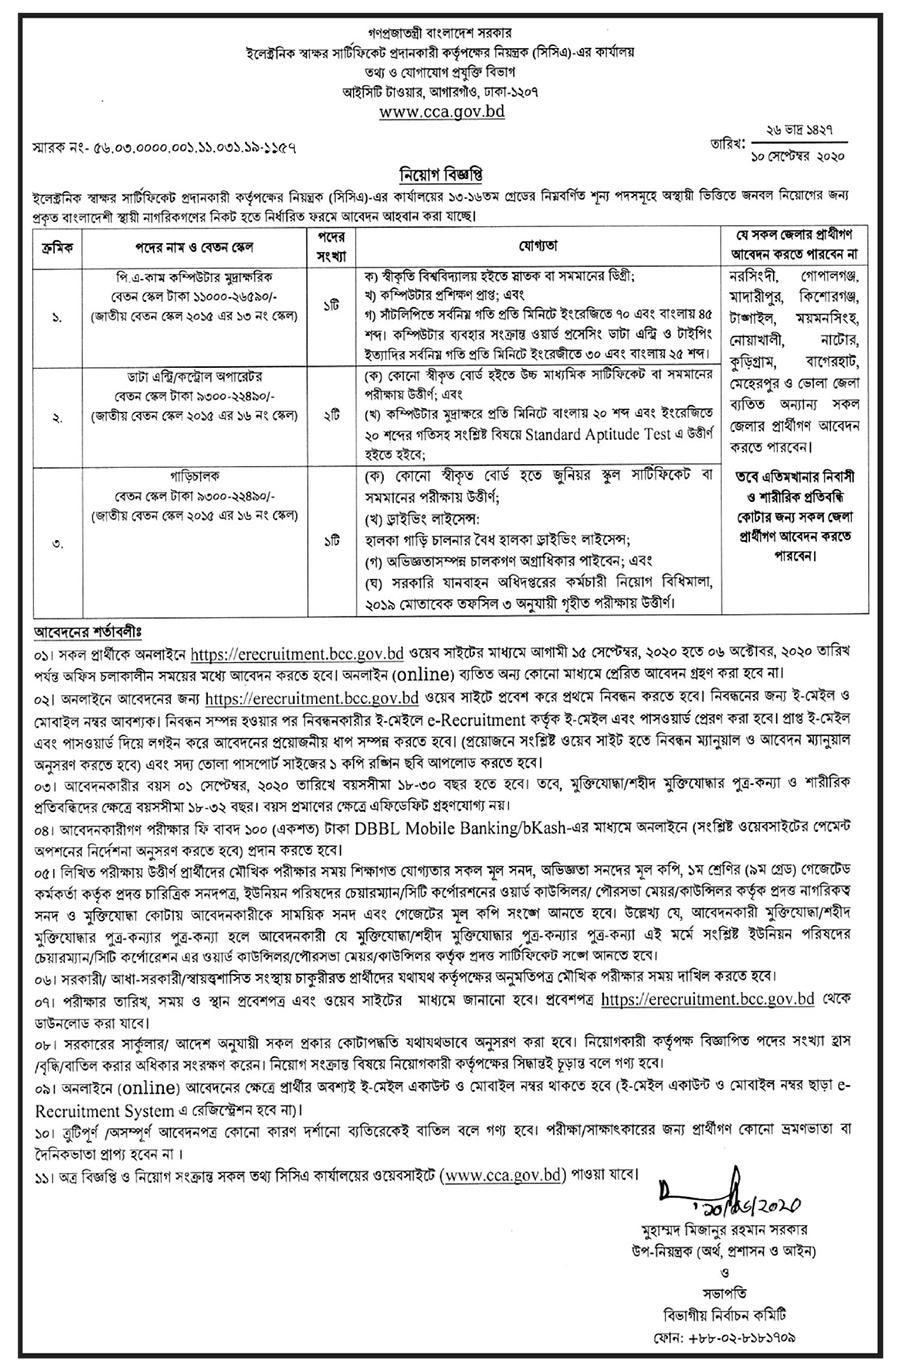 Controller Of Certifying Authorities Job circular 2020